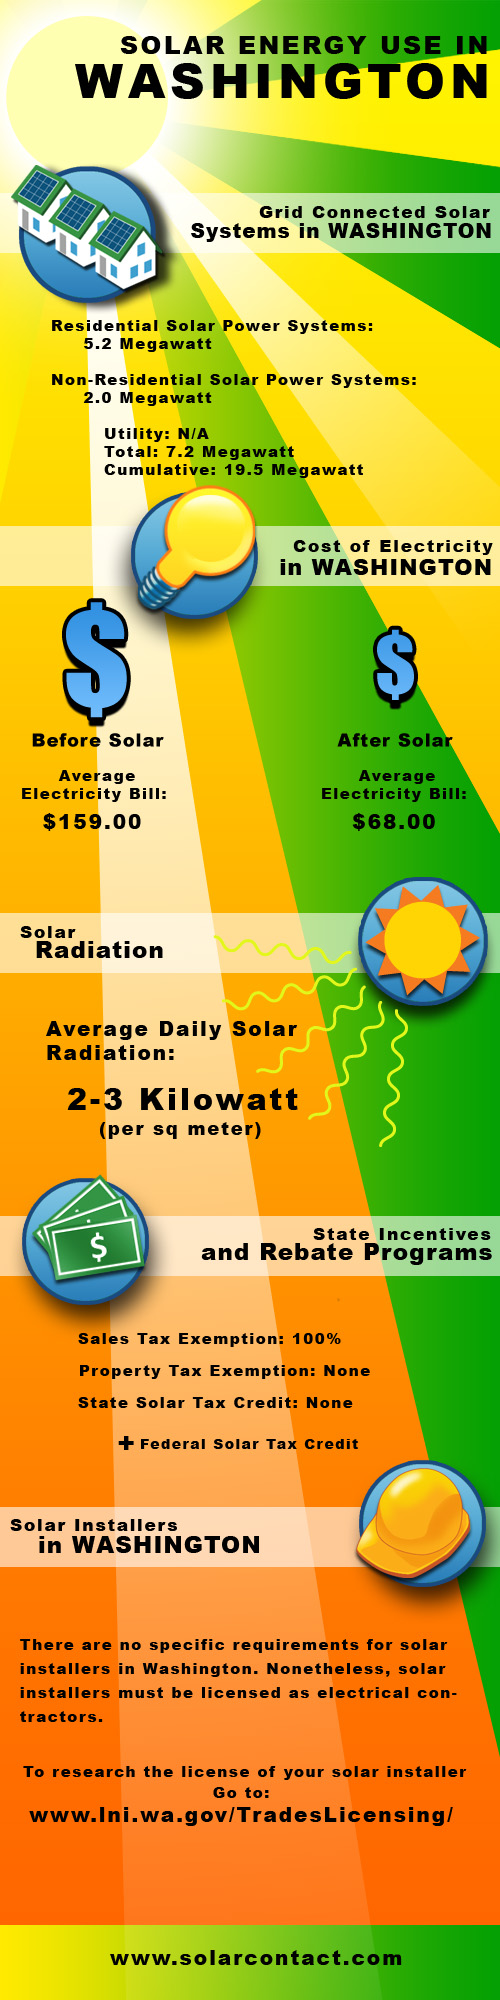 Fact Sheet Solar Energy Use in Washington